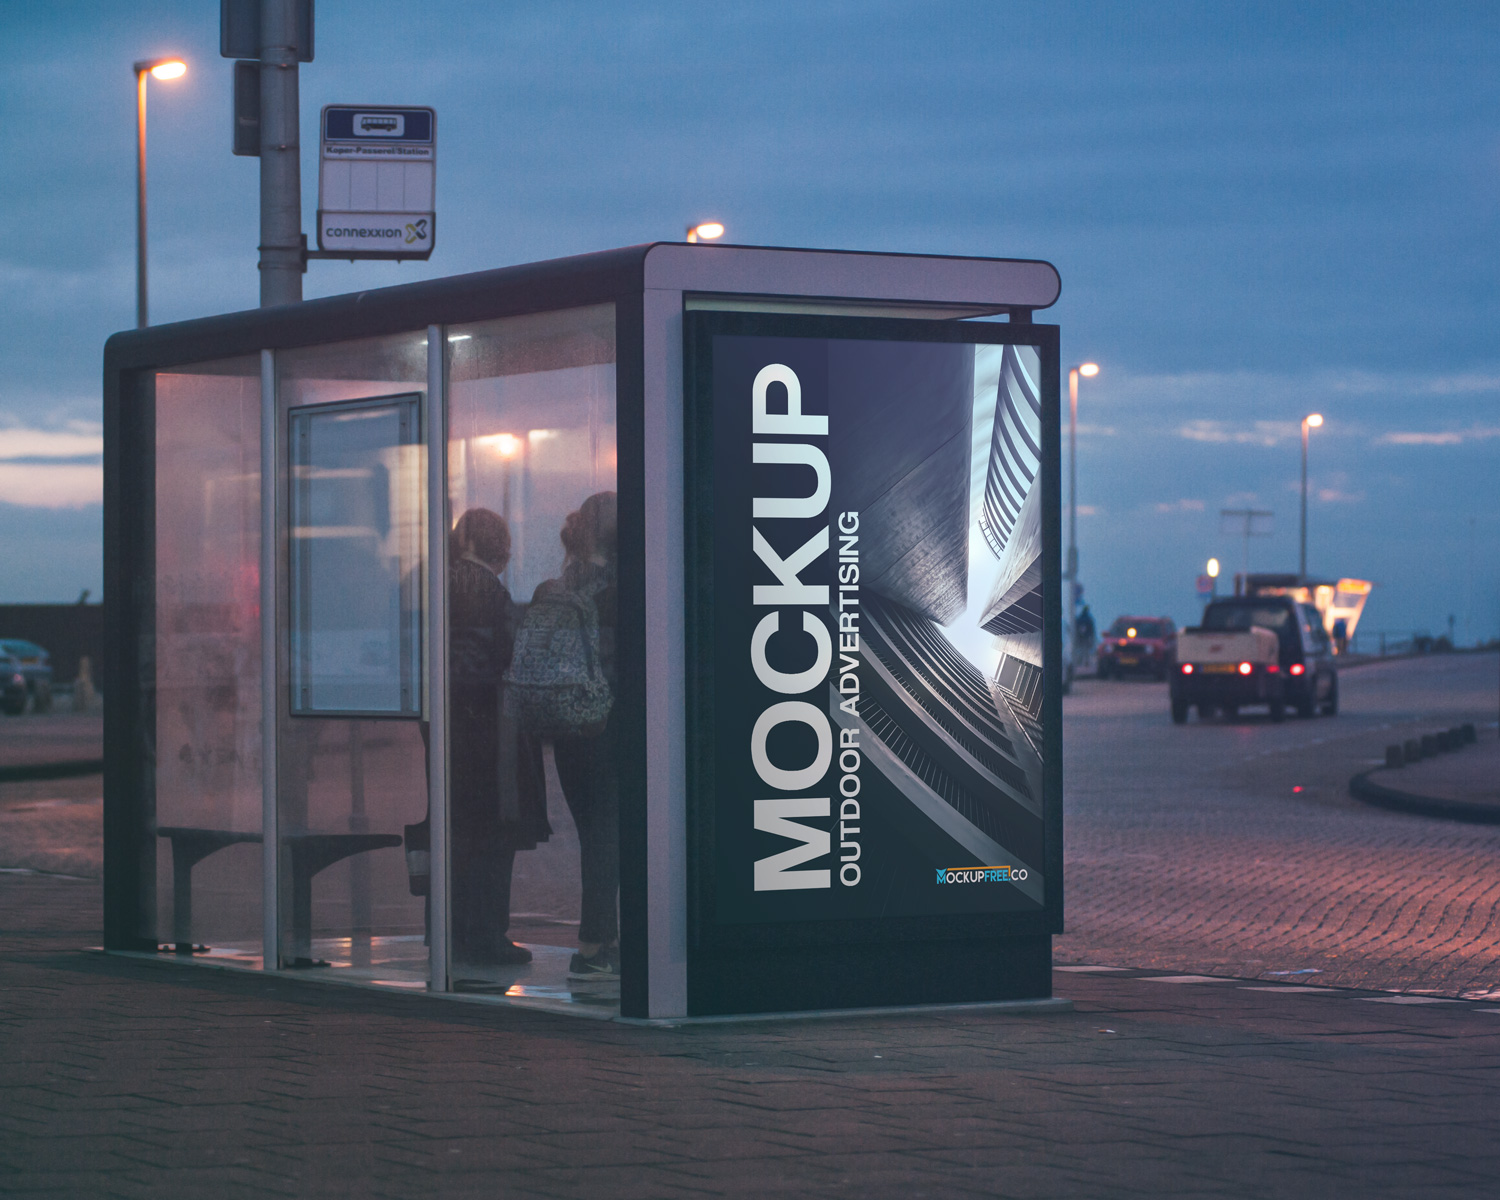 Free-Bus-Stop-Outdoor-Advertising-Mockup-02